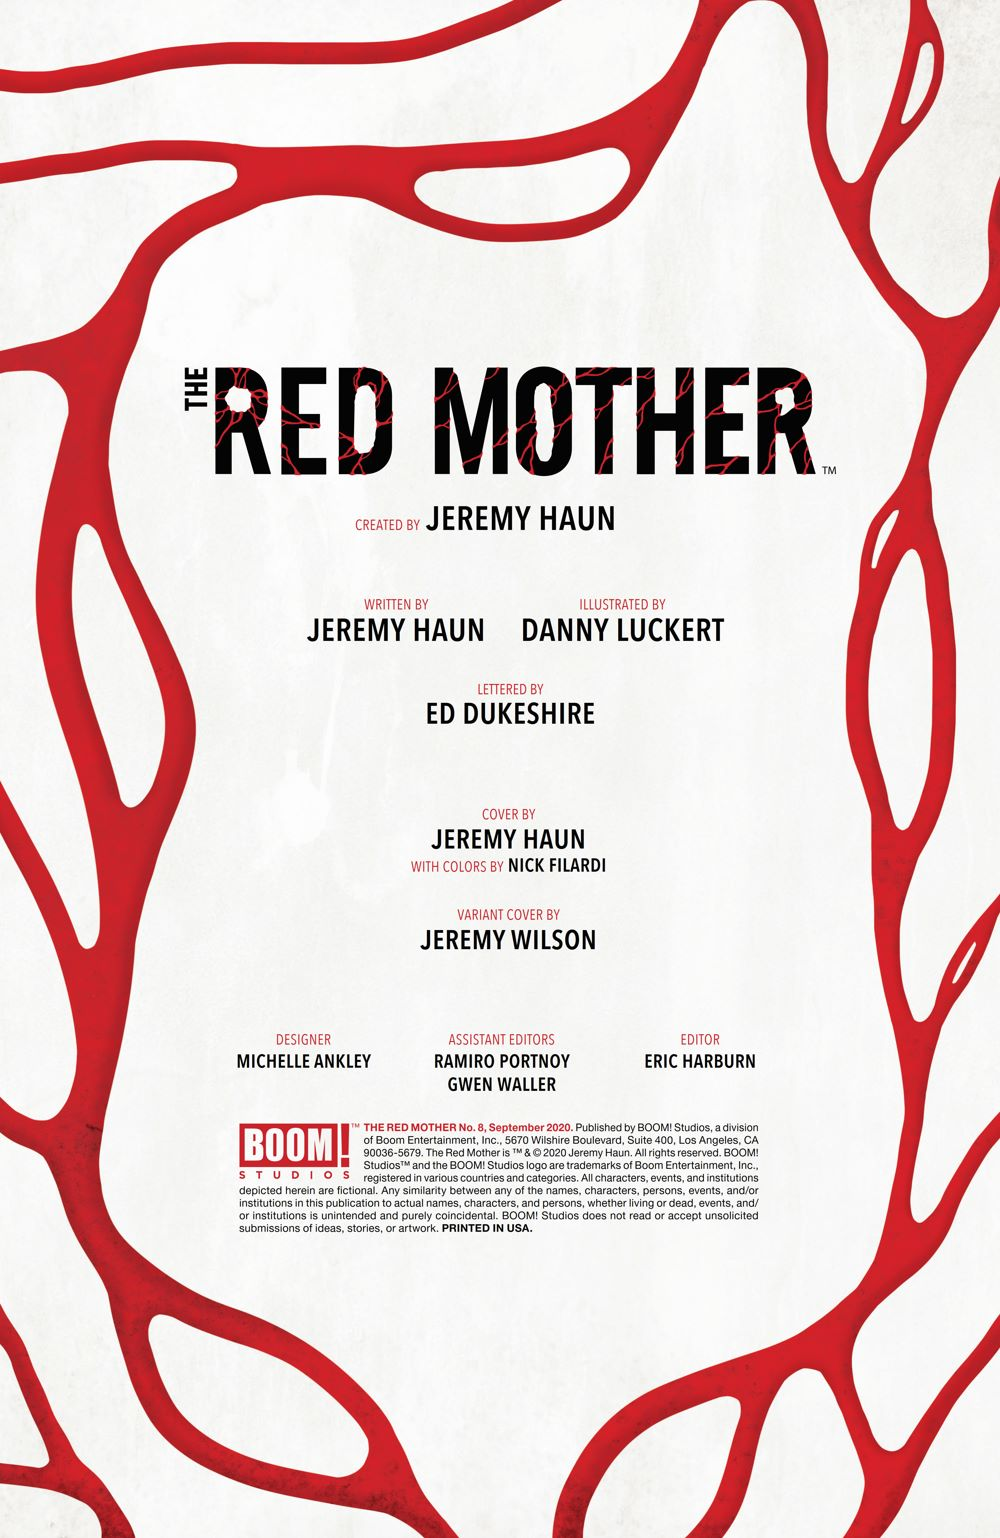 RedMother_008_PRESS_2 ComicList Previews: THE RED MOTHER #8